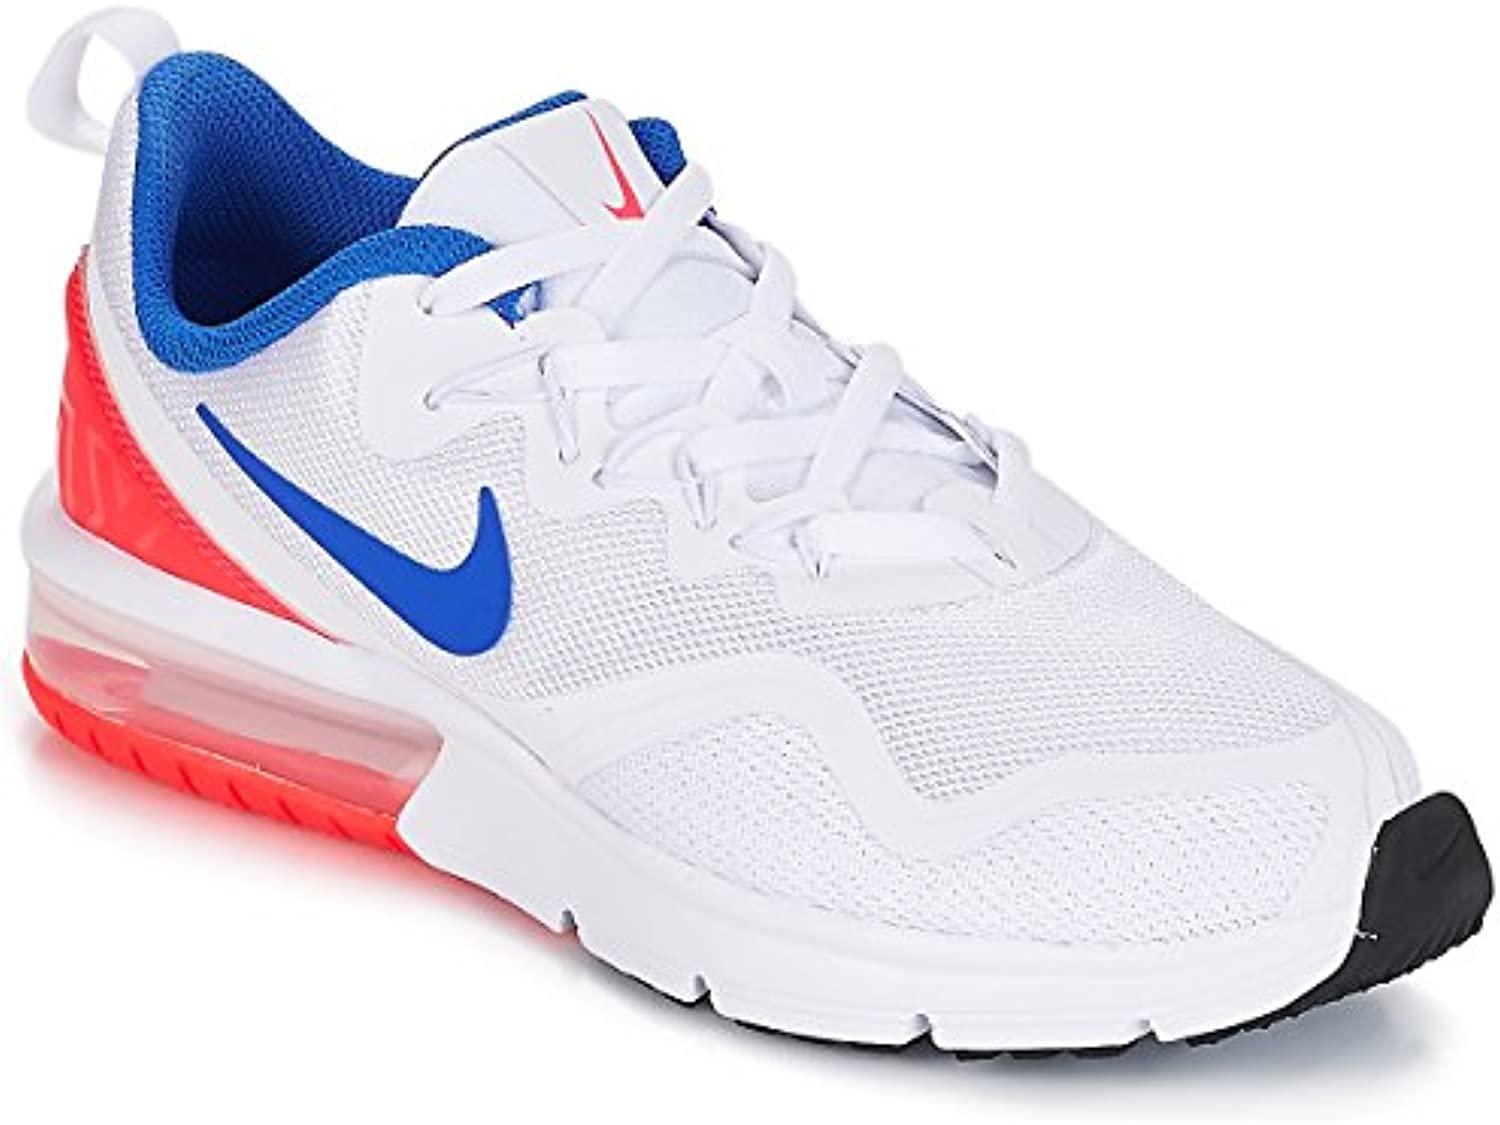 nike concurrence nike nike garons air max fury gs concurrence nike des chaussures 49149a